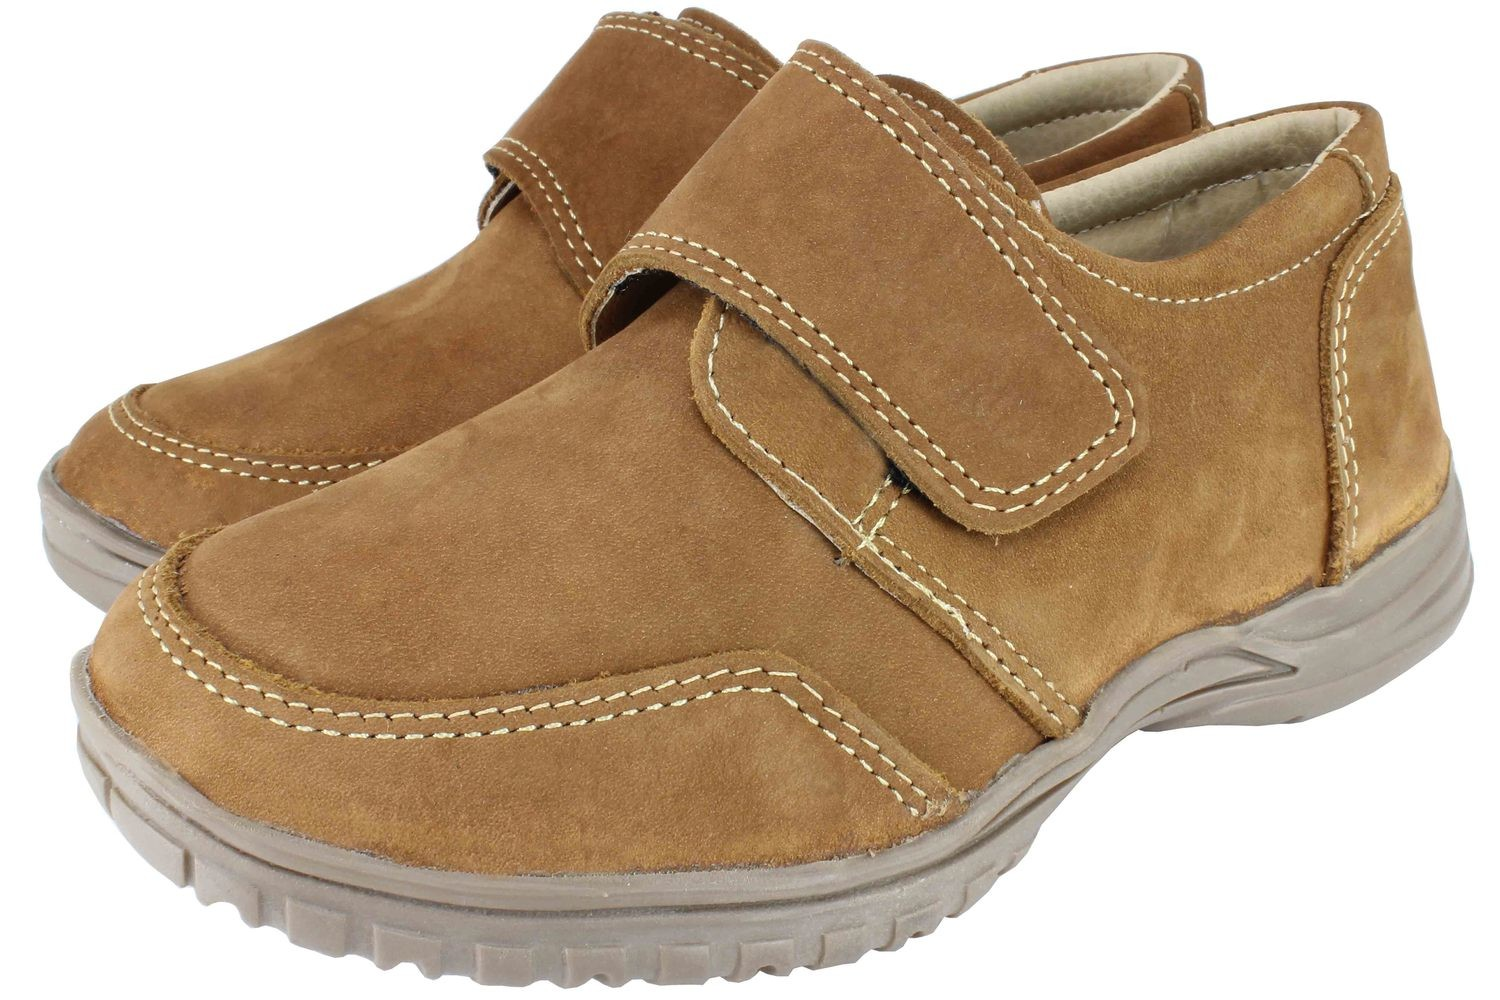 Boys Shoes Genuine Nubuck Leather Light Brown - SUGGESTED RETAIL PRICE $30 - WHOLESALE PRICE $6.5 - Minimum purchase 10 pairs